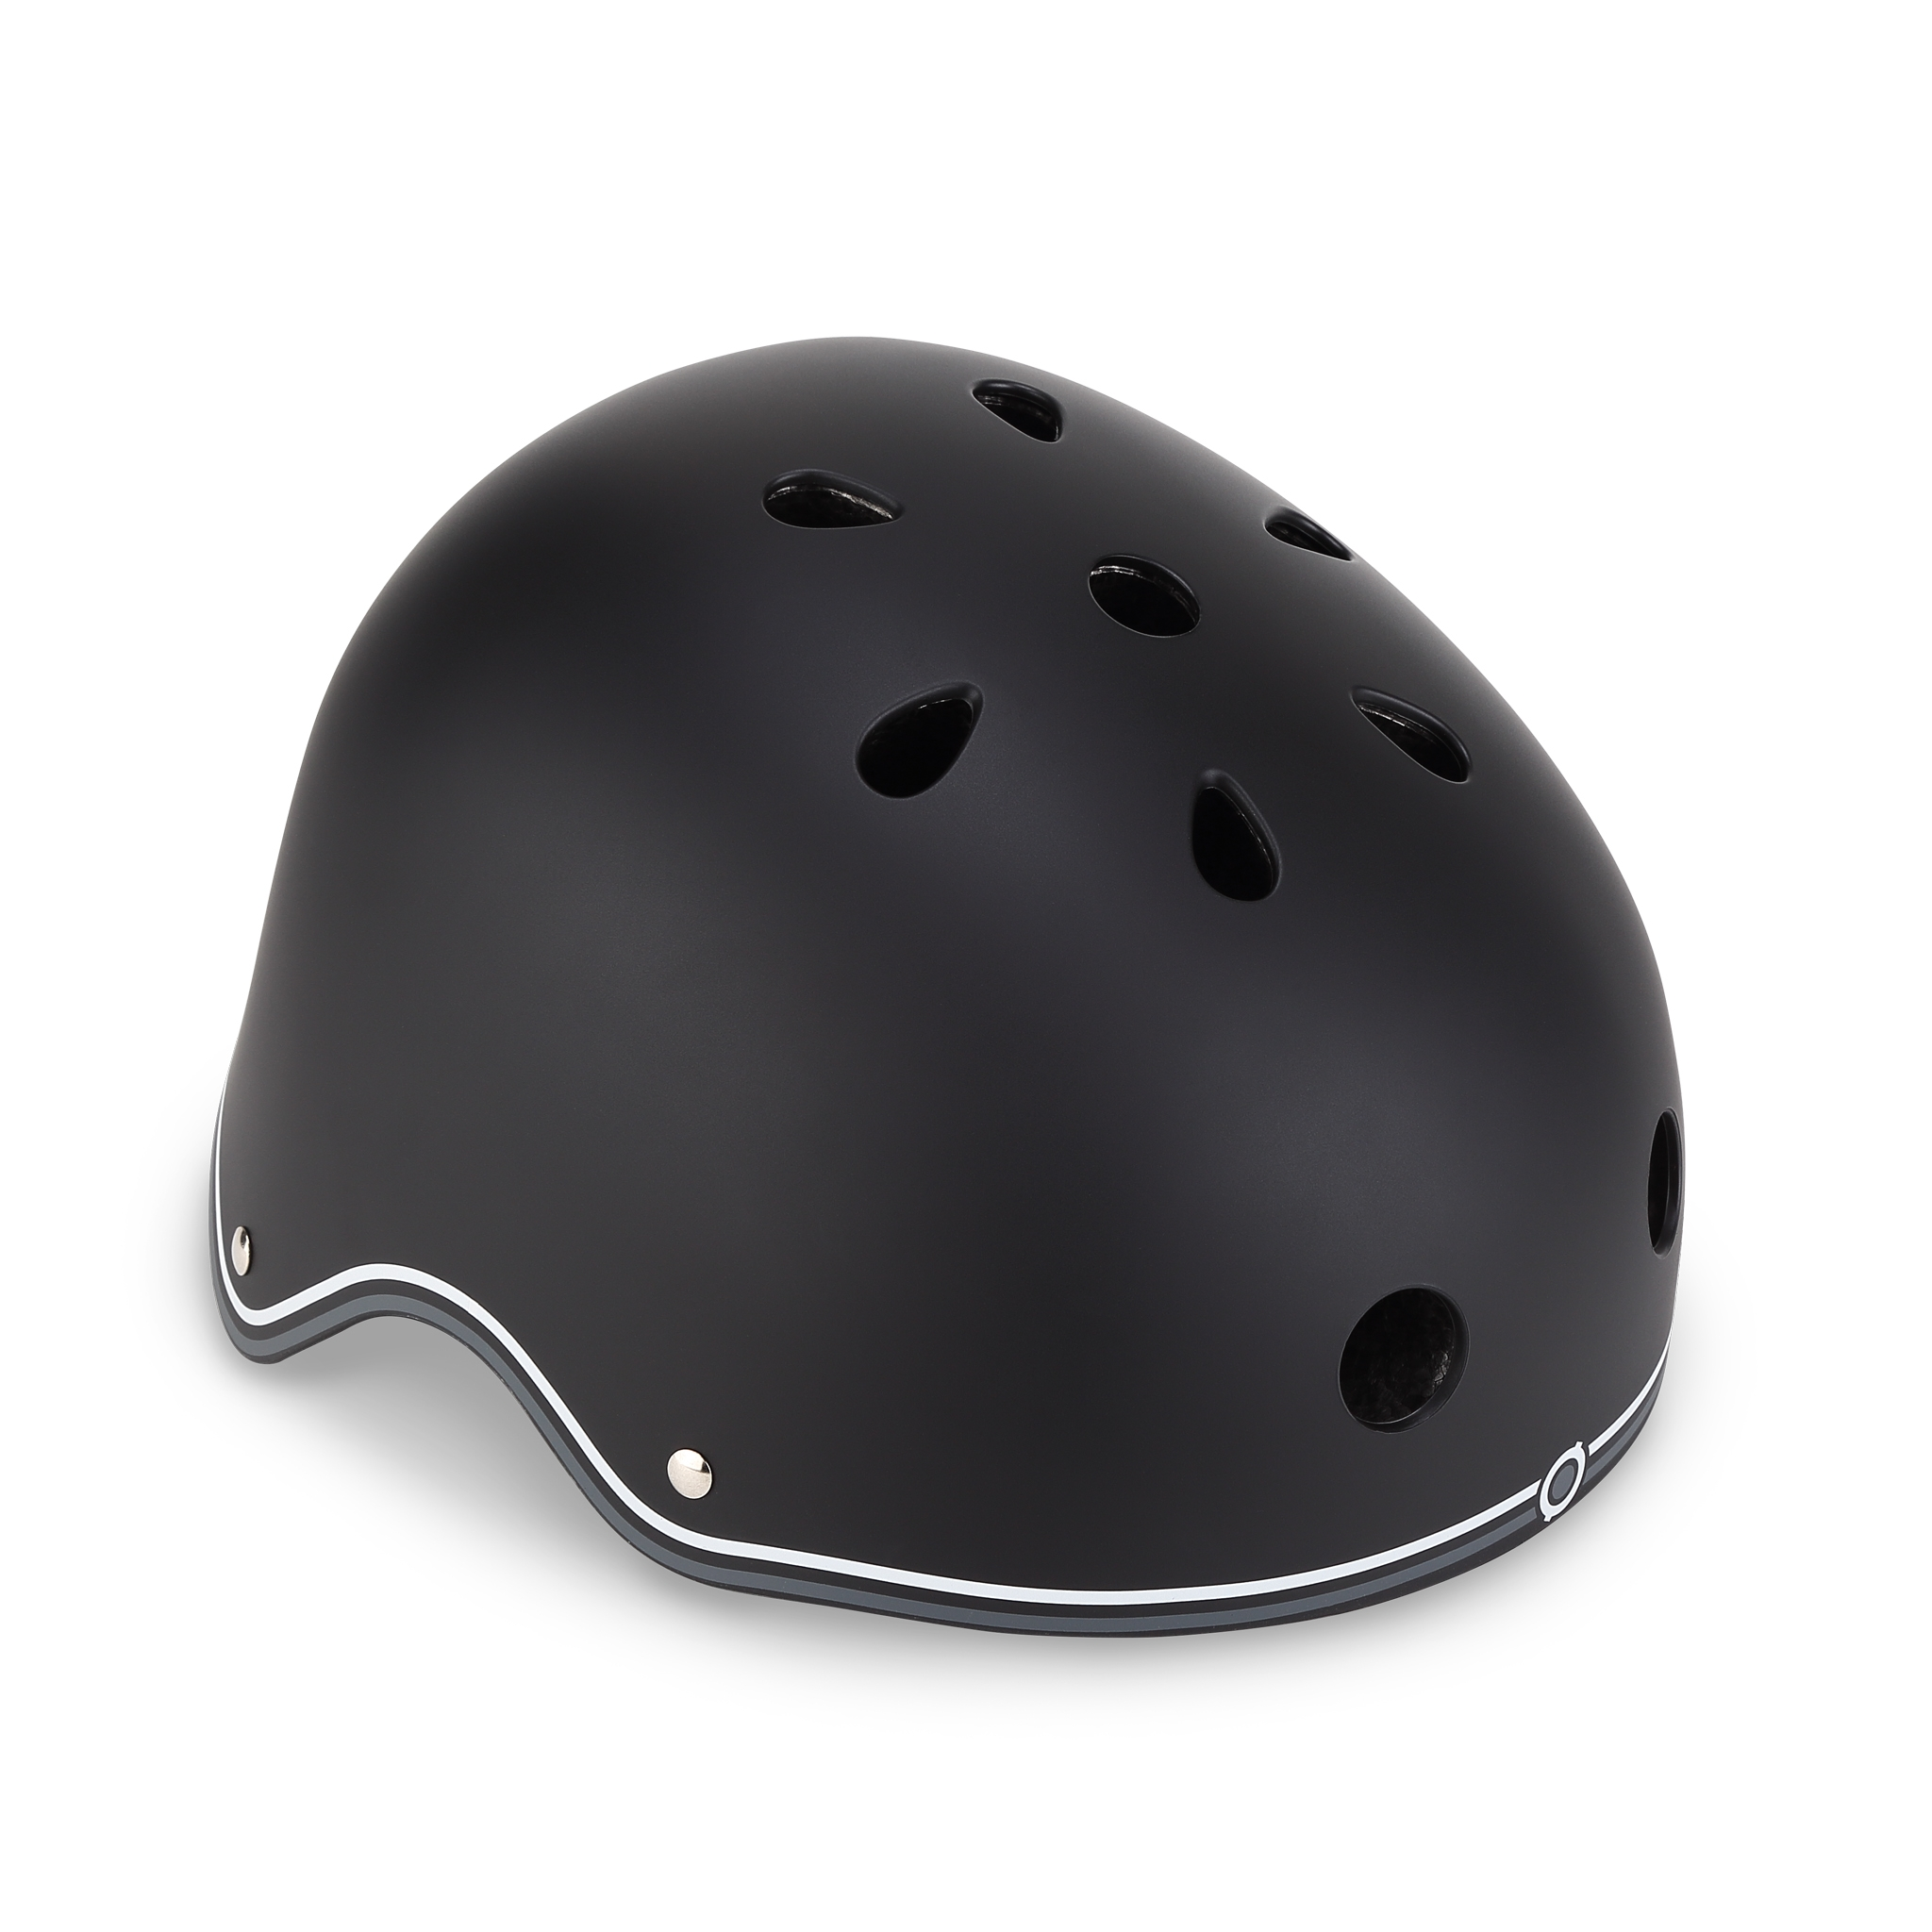 PRIMO-helmets-scooter-helmets-for-kids-in-mold-polycarbonate-outer-shell-black